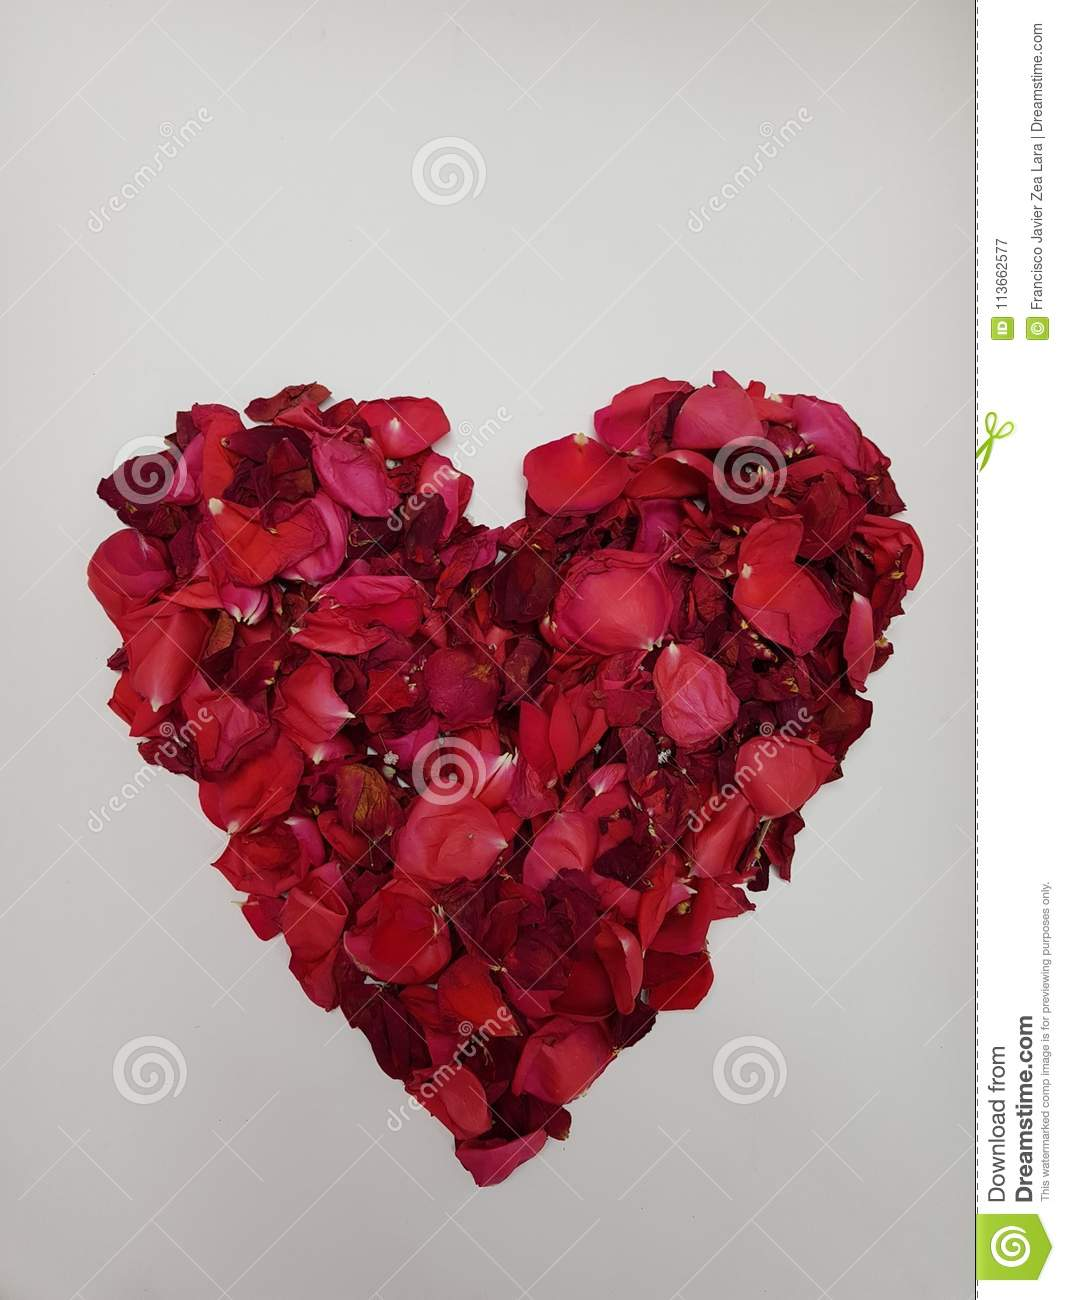 Heart Formed With Red Rose Petals Stock Image